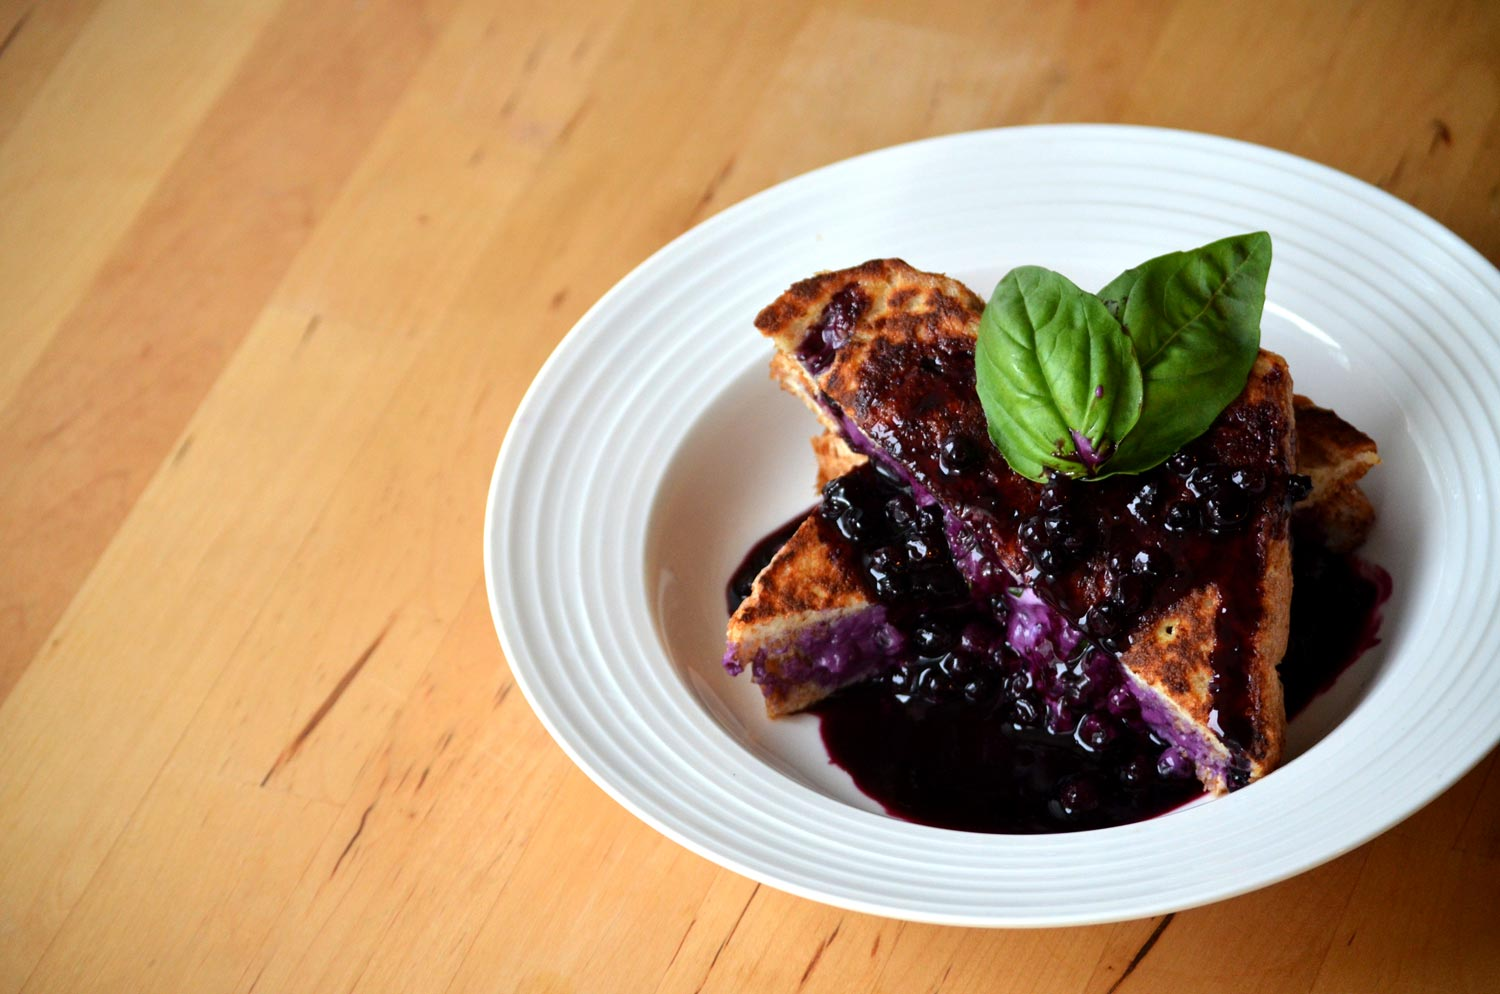 Blueberry, Chevre & Basil Stuffed French Toast with Blueberry Compote